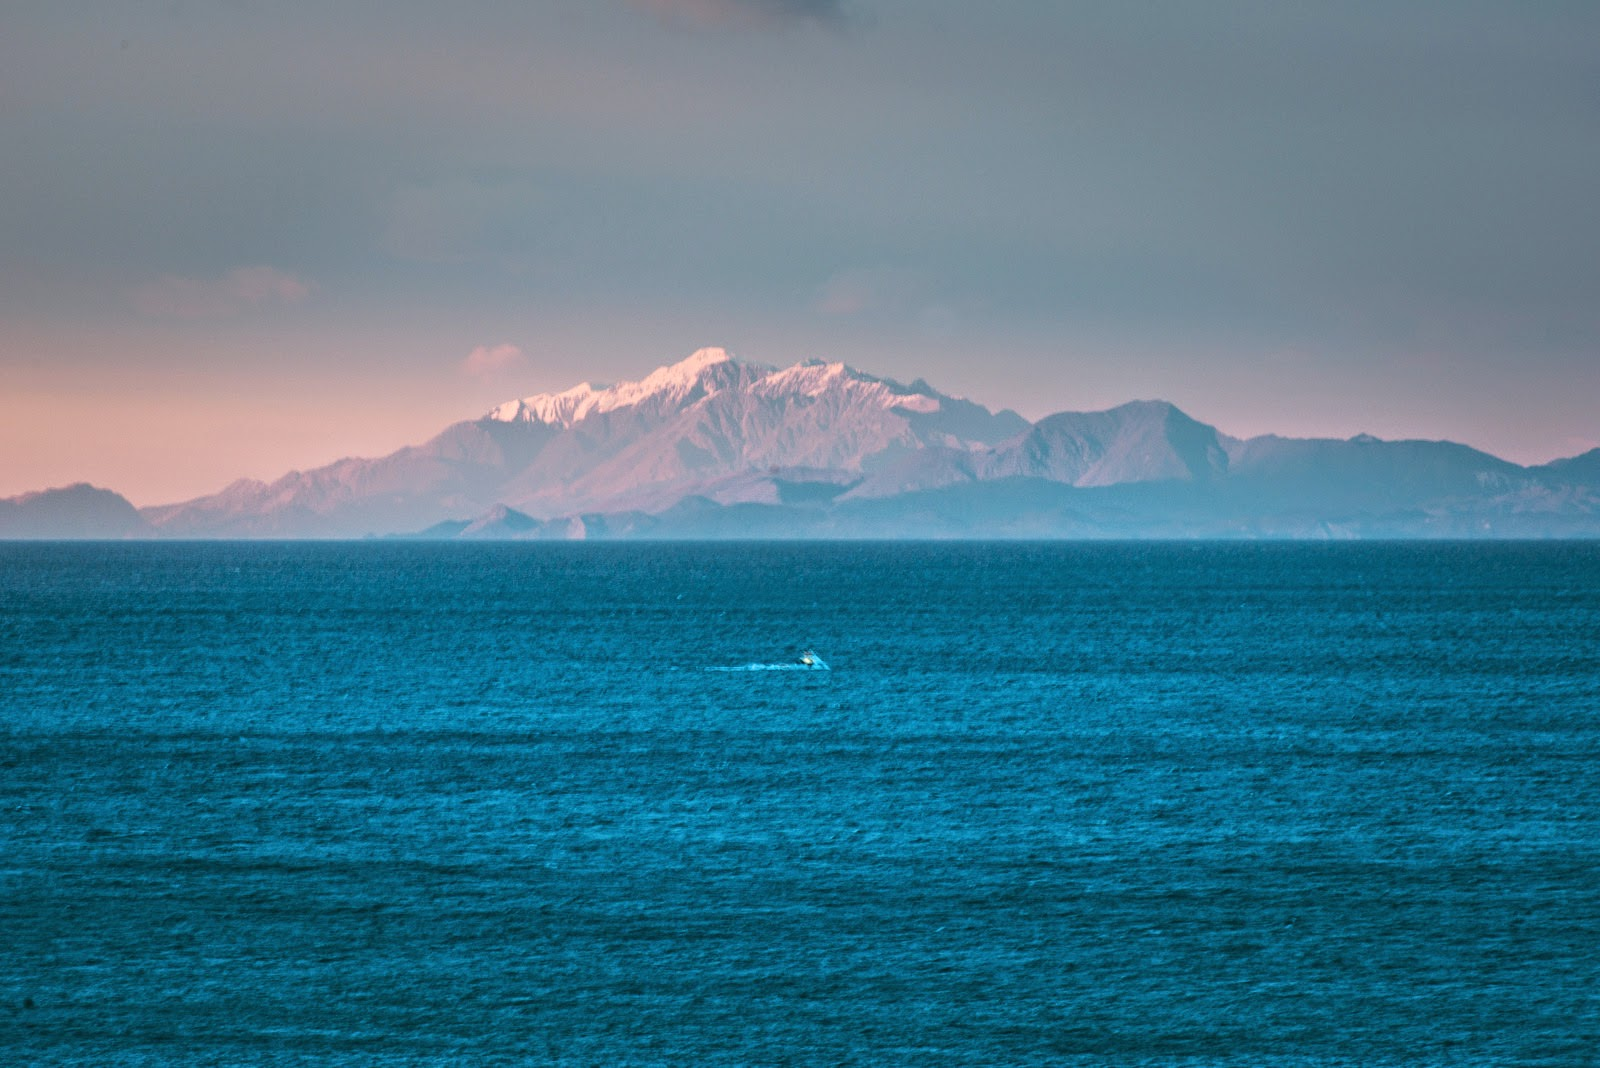 Kaikoura mountain, fishing boat and Cook Strait